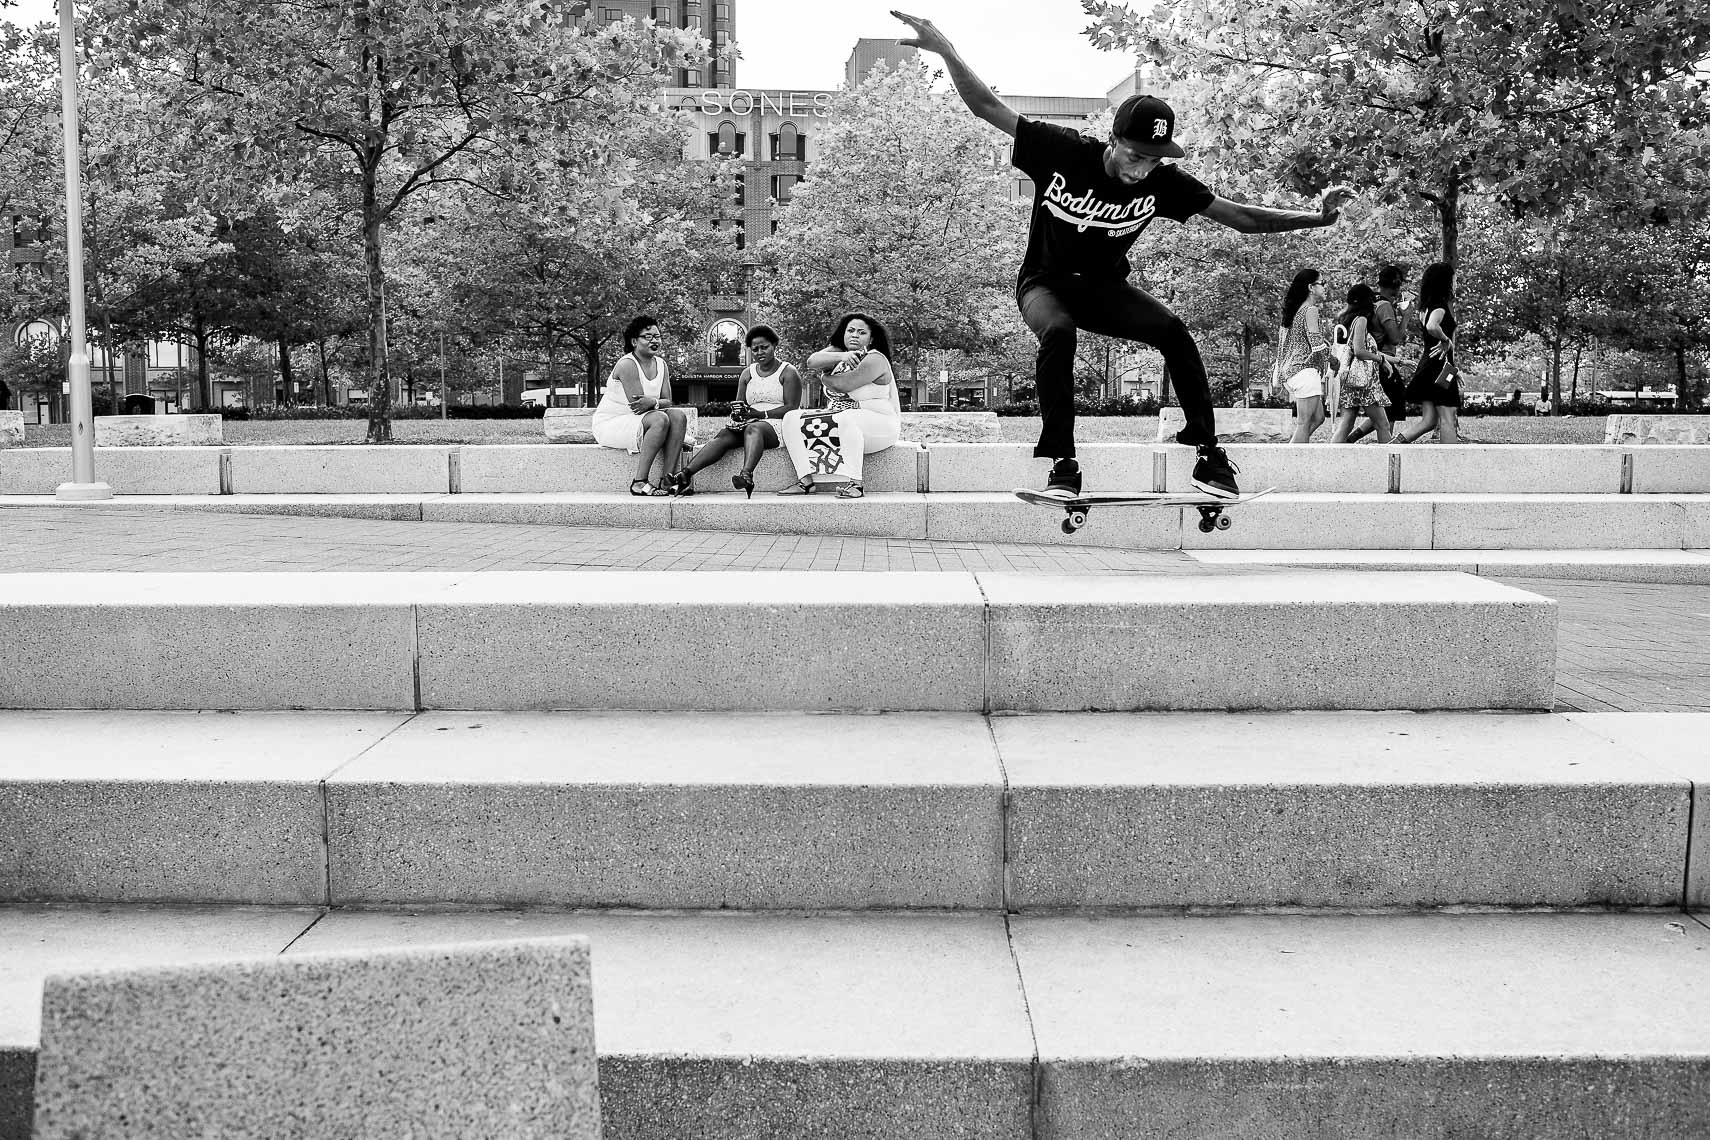 milksquad02_Milksquad was a group of African American Baltimore youth skateboarders sponsored by Milkcrate Athletics NYC who skateboard in Baltimore city youth culture documentary photography project